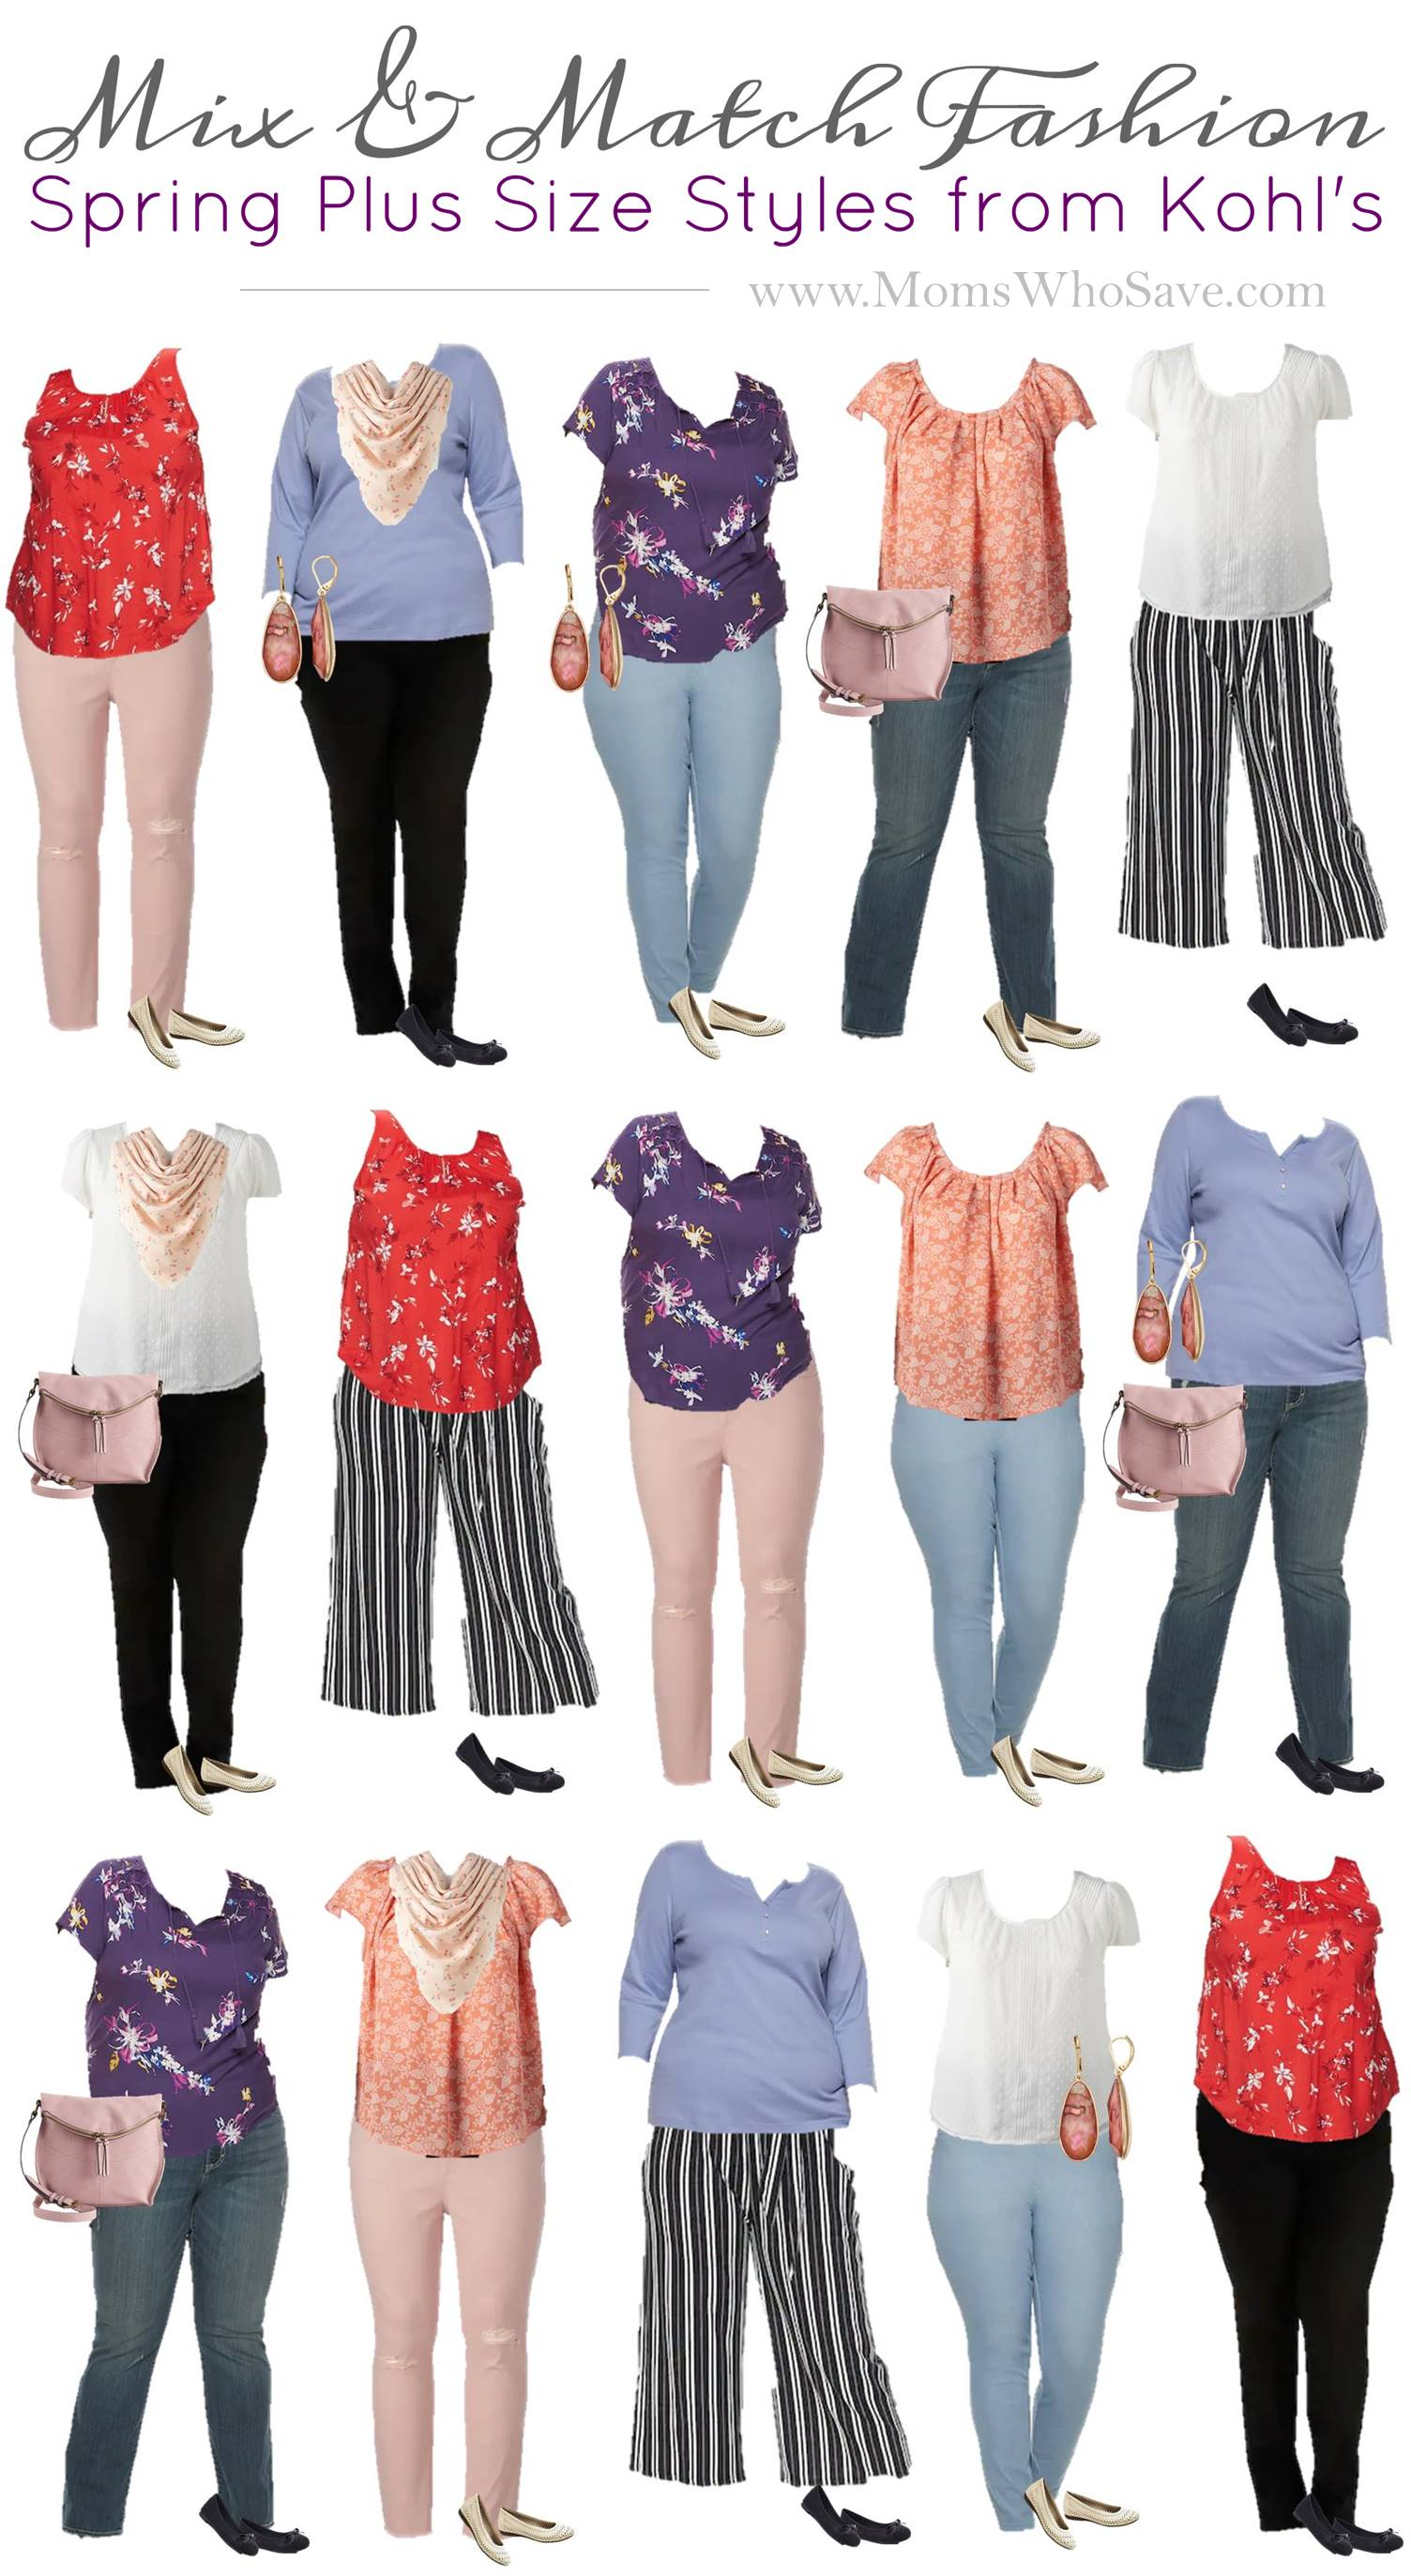 Mix & Match Plus Size wardrobe